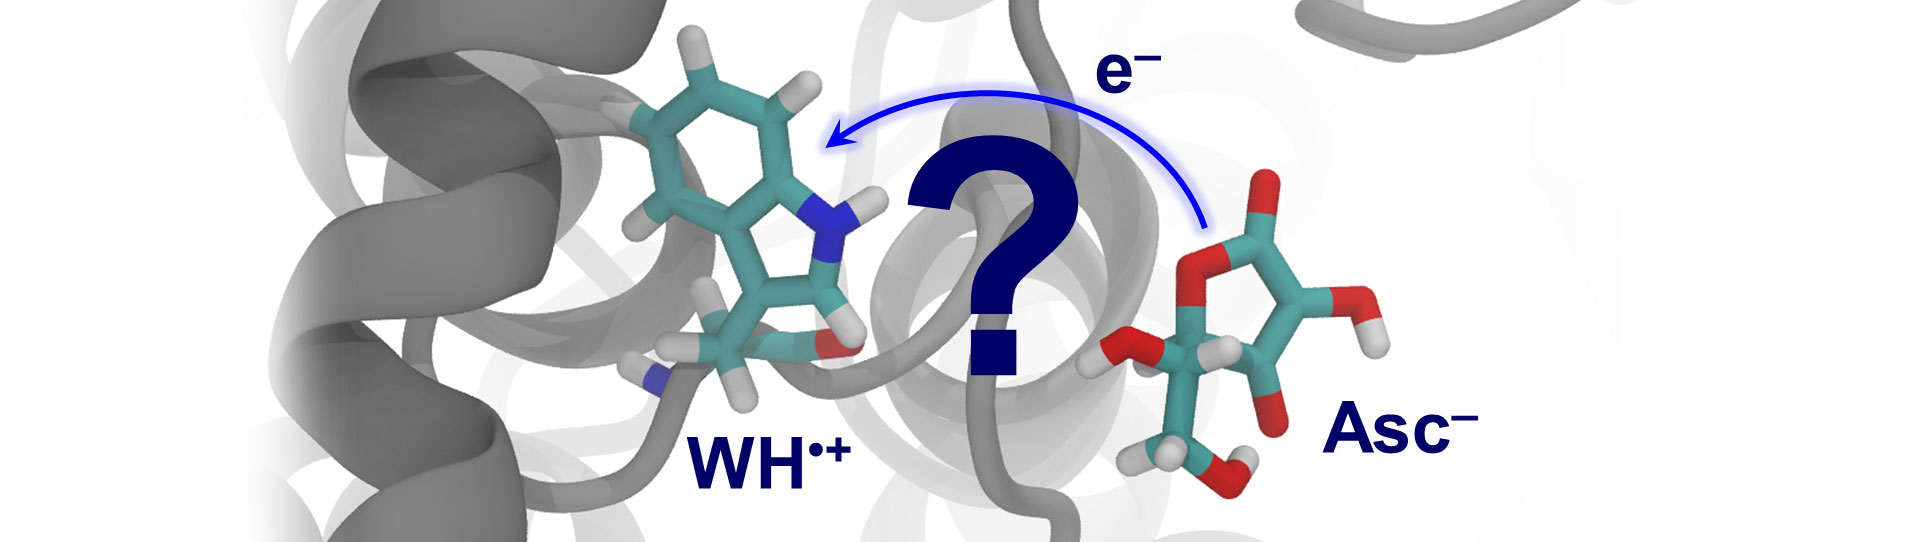 Can ascorbate transfer an electron to the tryptophan radical?